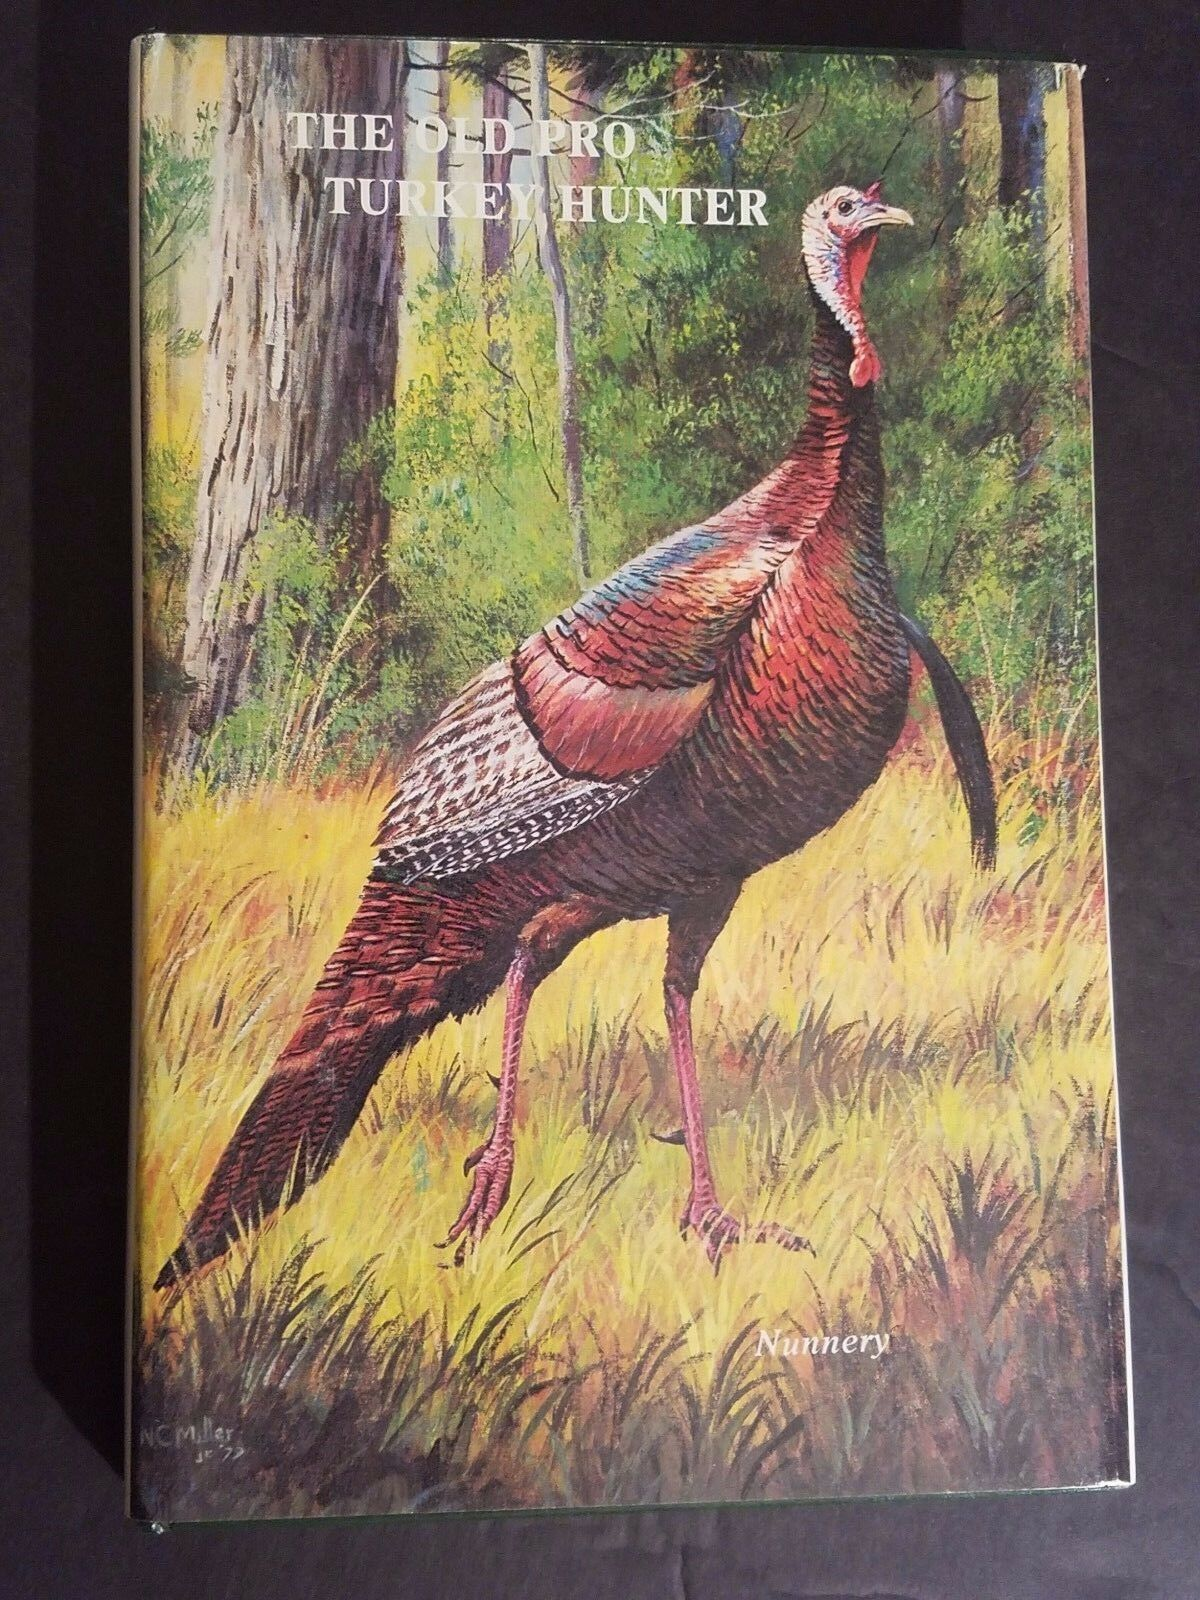 SIGNED by AUTOR - Gene Nunnery The Old Pro Turkey Hunter Hardcover 1980 1st Ed